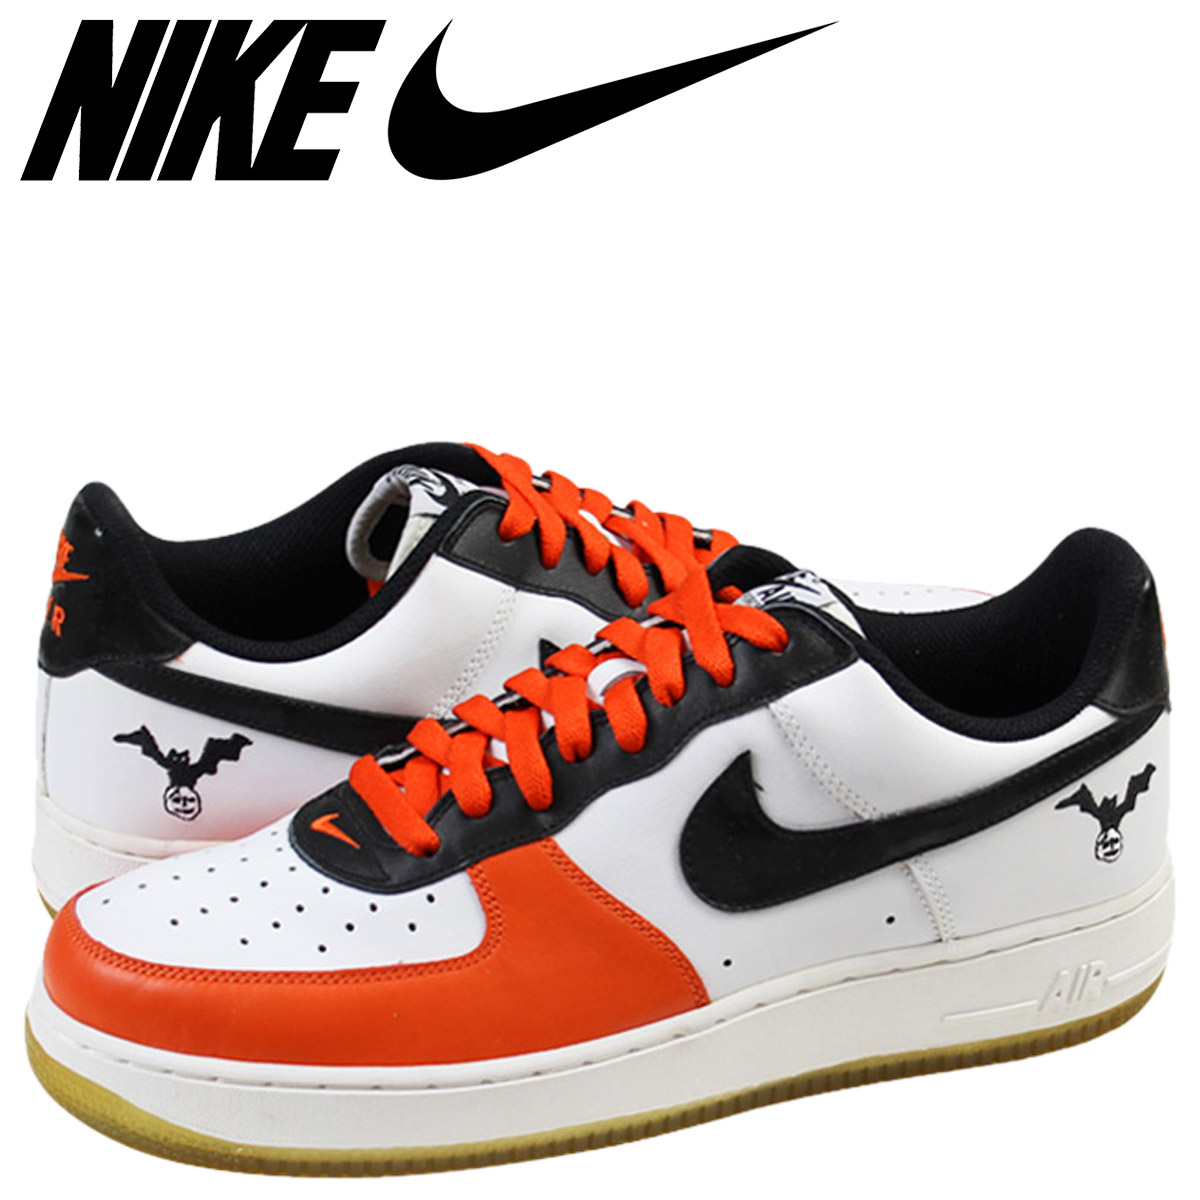 sports shoes 57e7c e2f25 Nike NIKE air force sneakers WMNS AIR FORCE 1 LOW air force 1 Halloween  307,109-103 Orangemen's